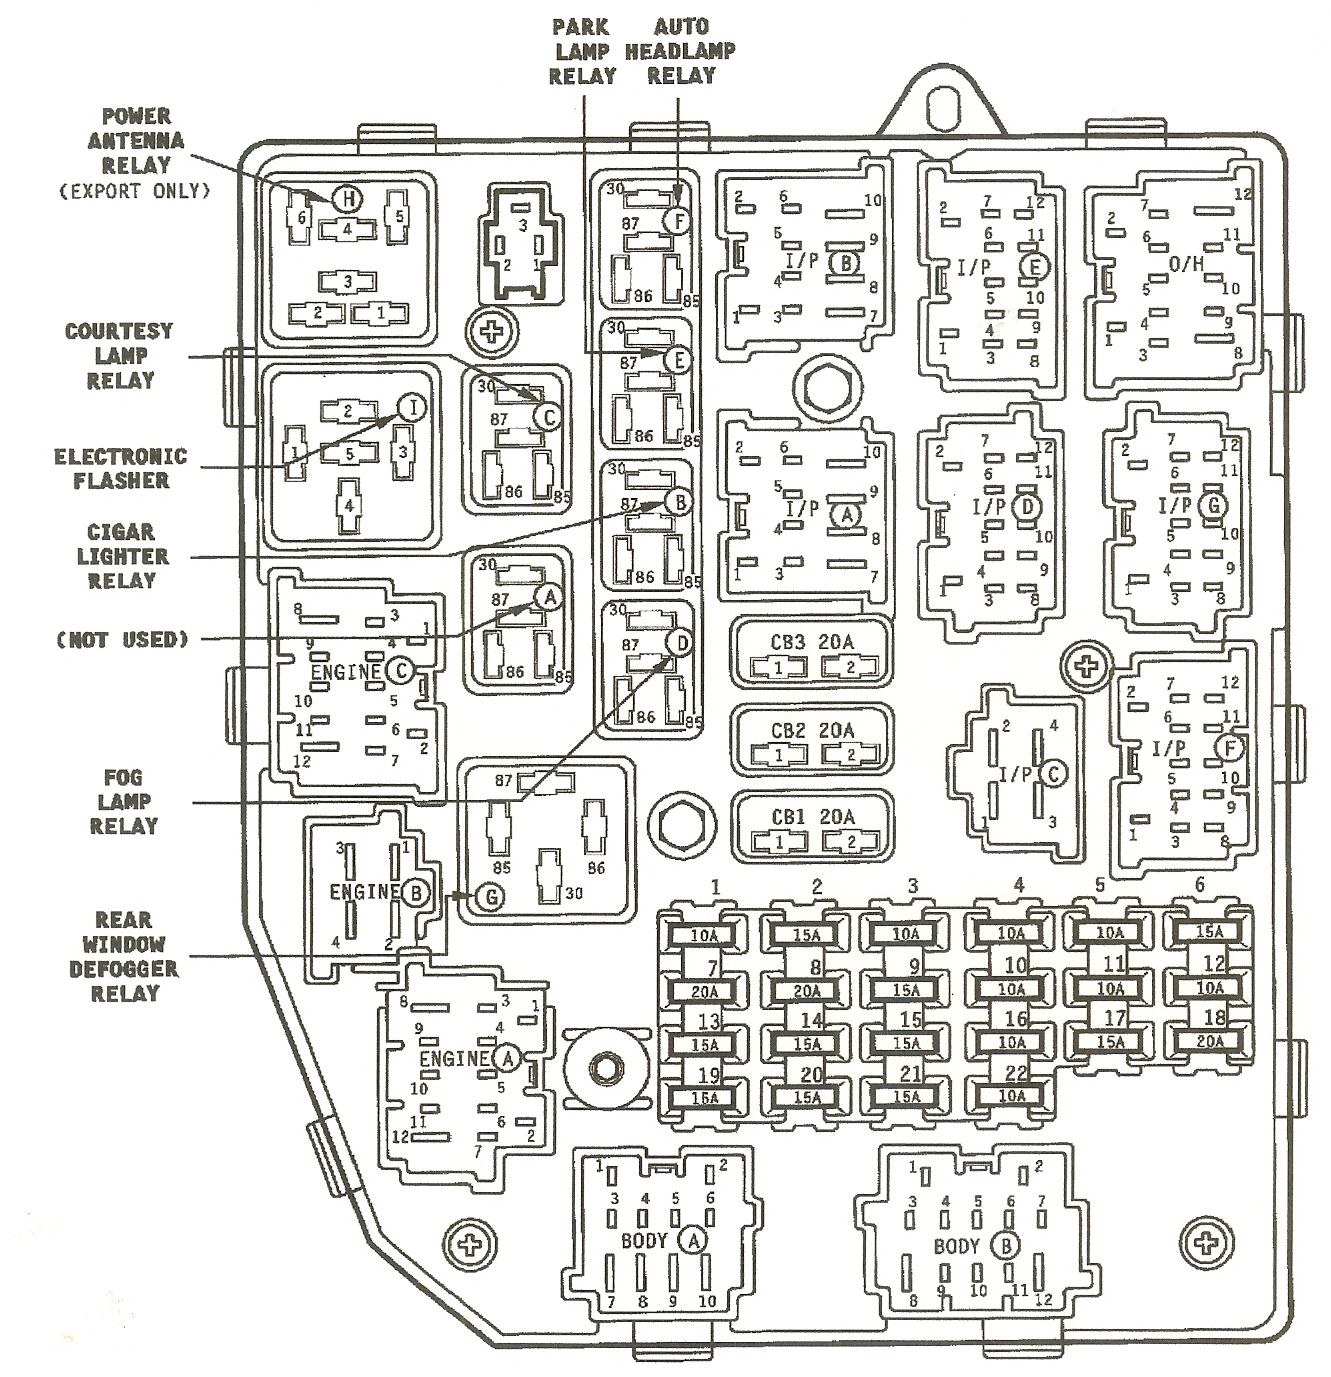 hight resolution of fuse box 96 jeep grand cherokee just wiring diagram 1996 jeep grand cherokee laredo fuse box 1996 jeep laredo fuse box